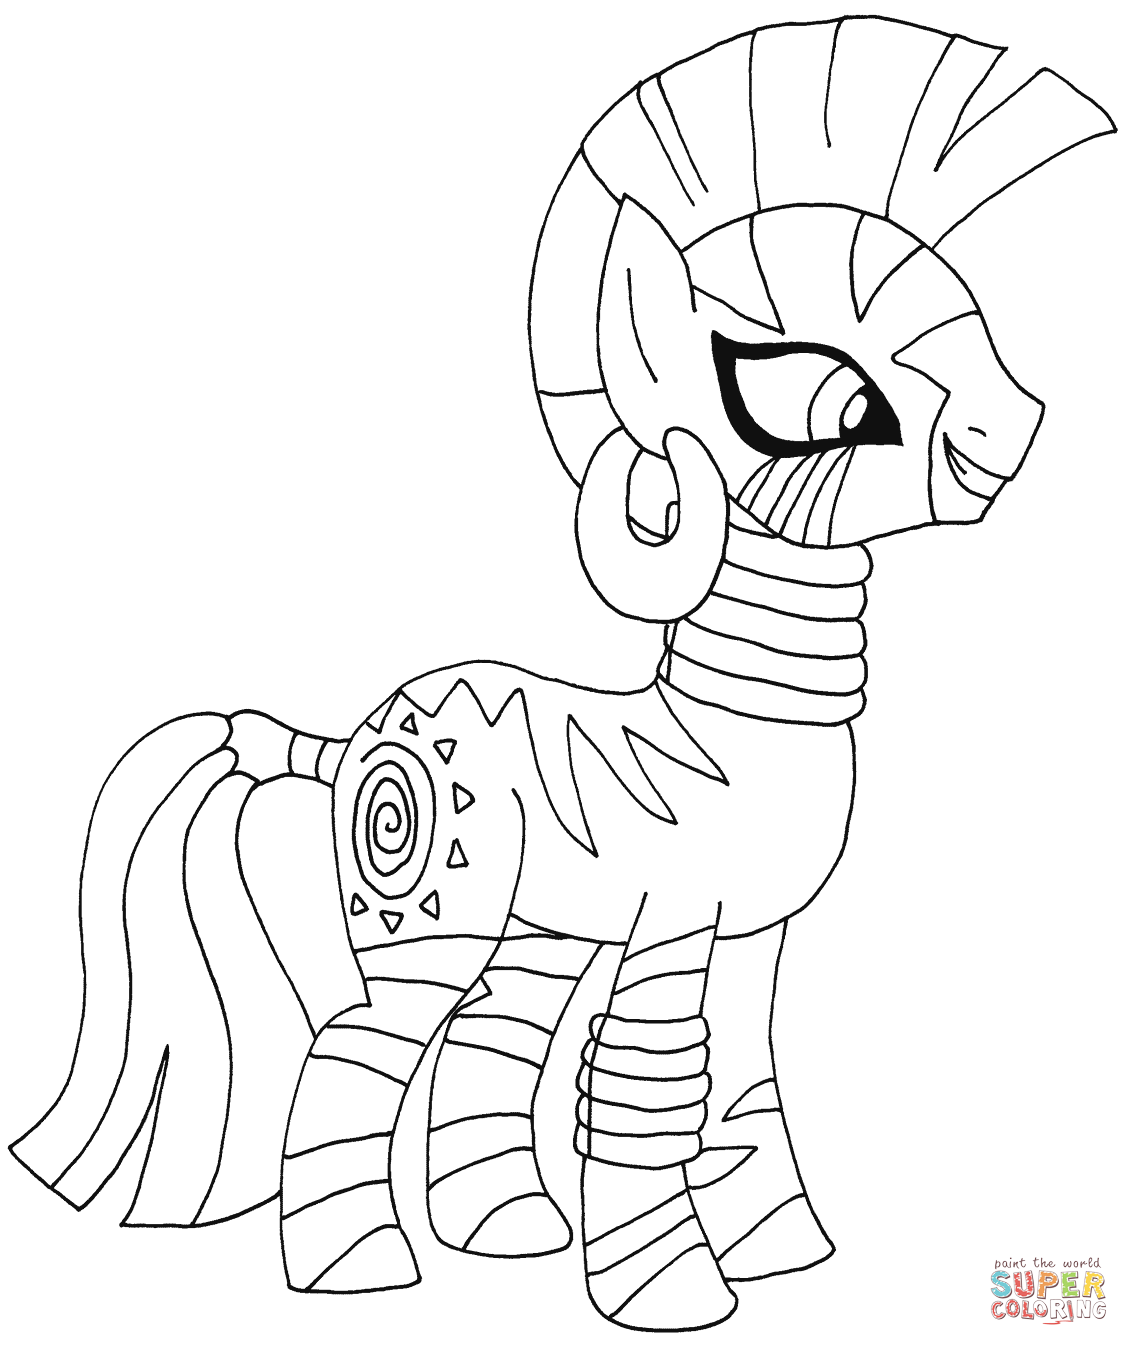 Mobile shimmer and shine coloring games coloring pages ausmalbilder - My Little Pony Zecora From My Little Pony My Little Pony Sweetie Belle From My Little Pony Coloring Page